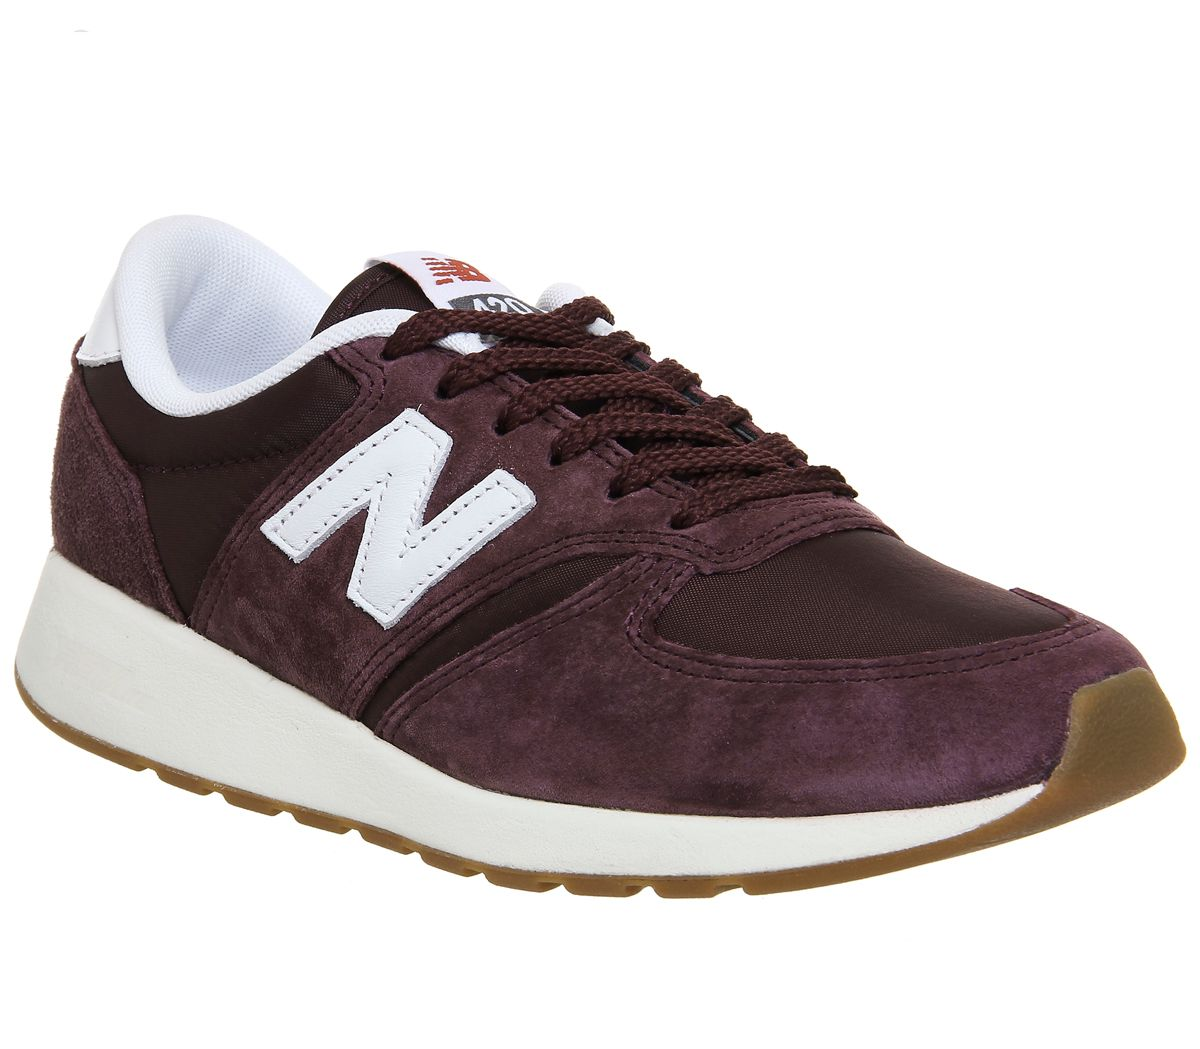 New Balance Mrl420 Trainers, Red